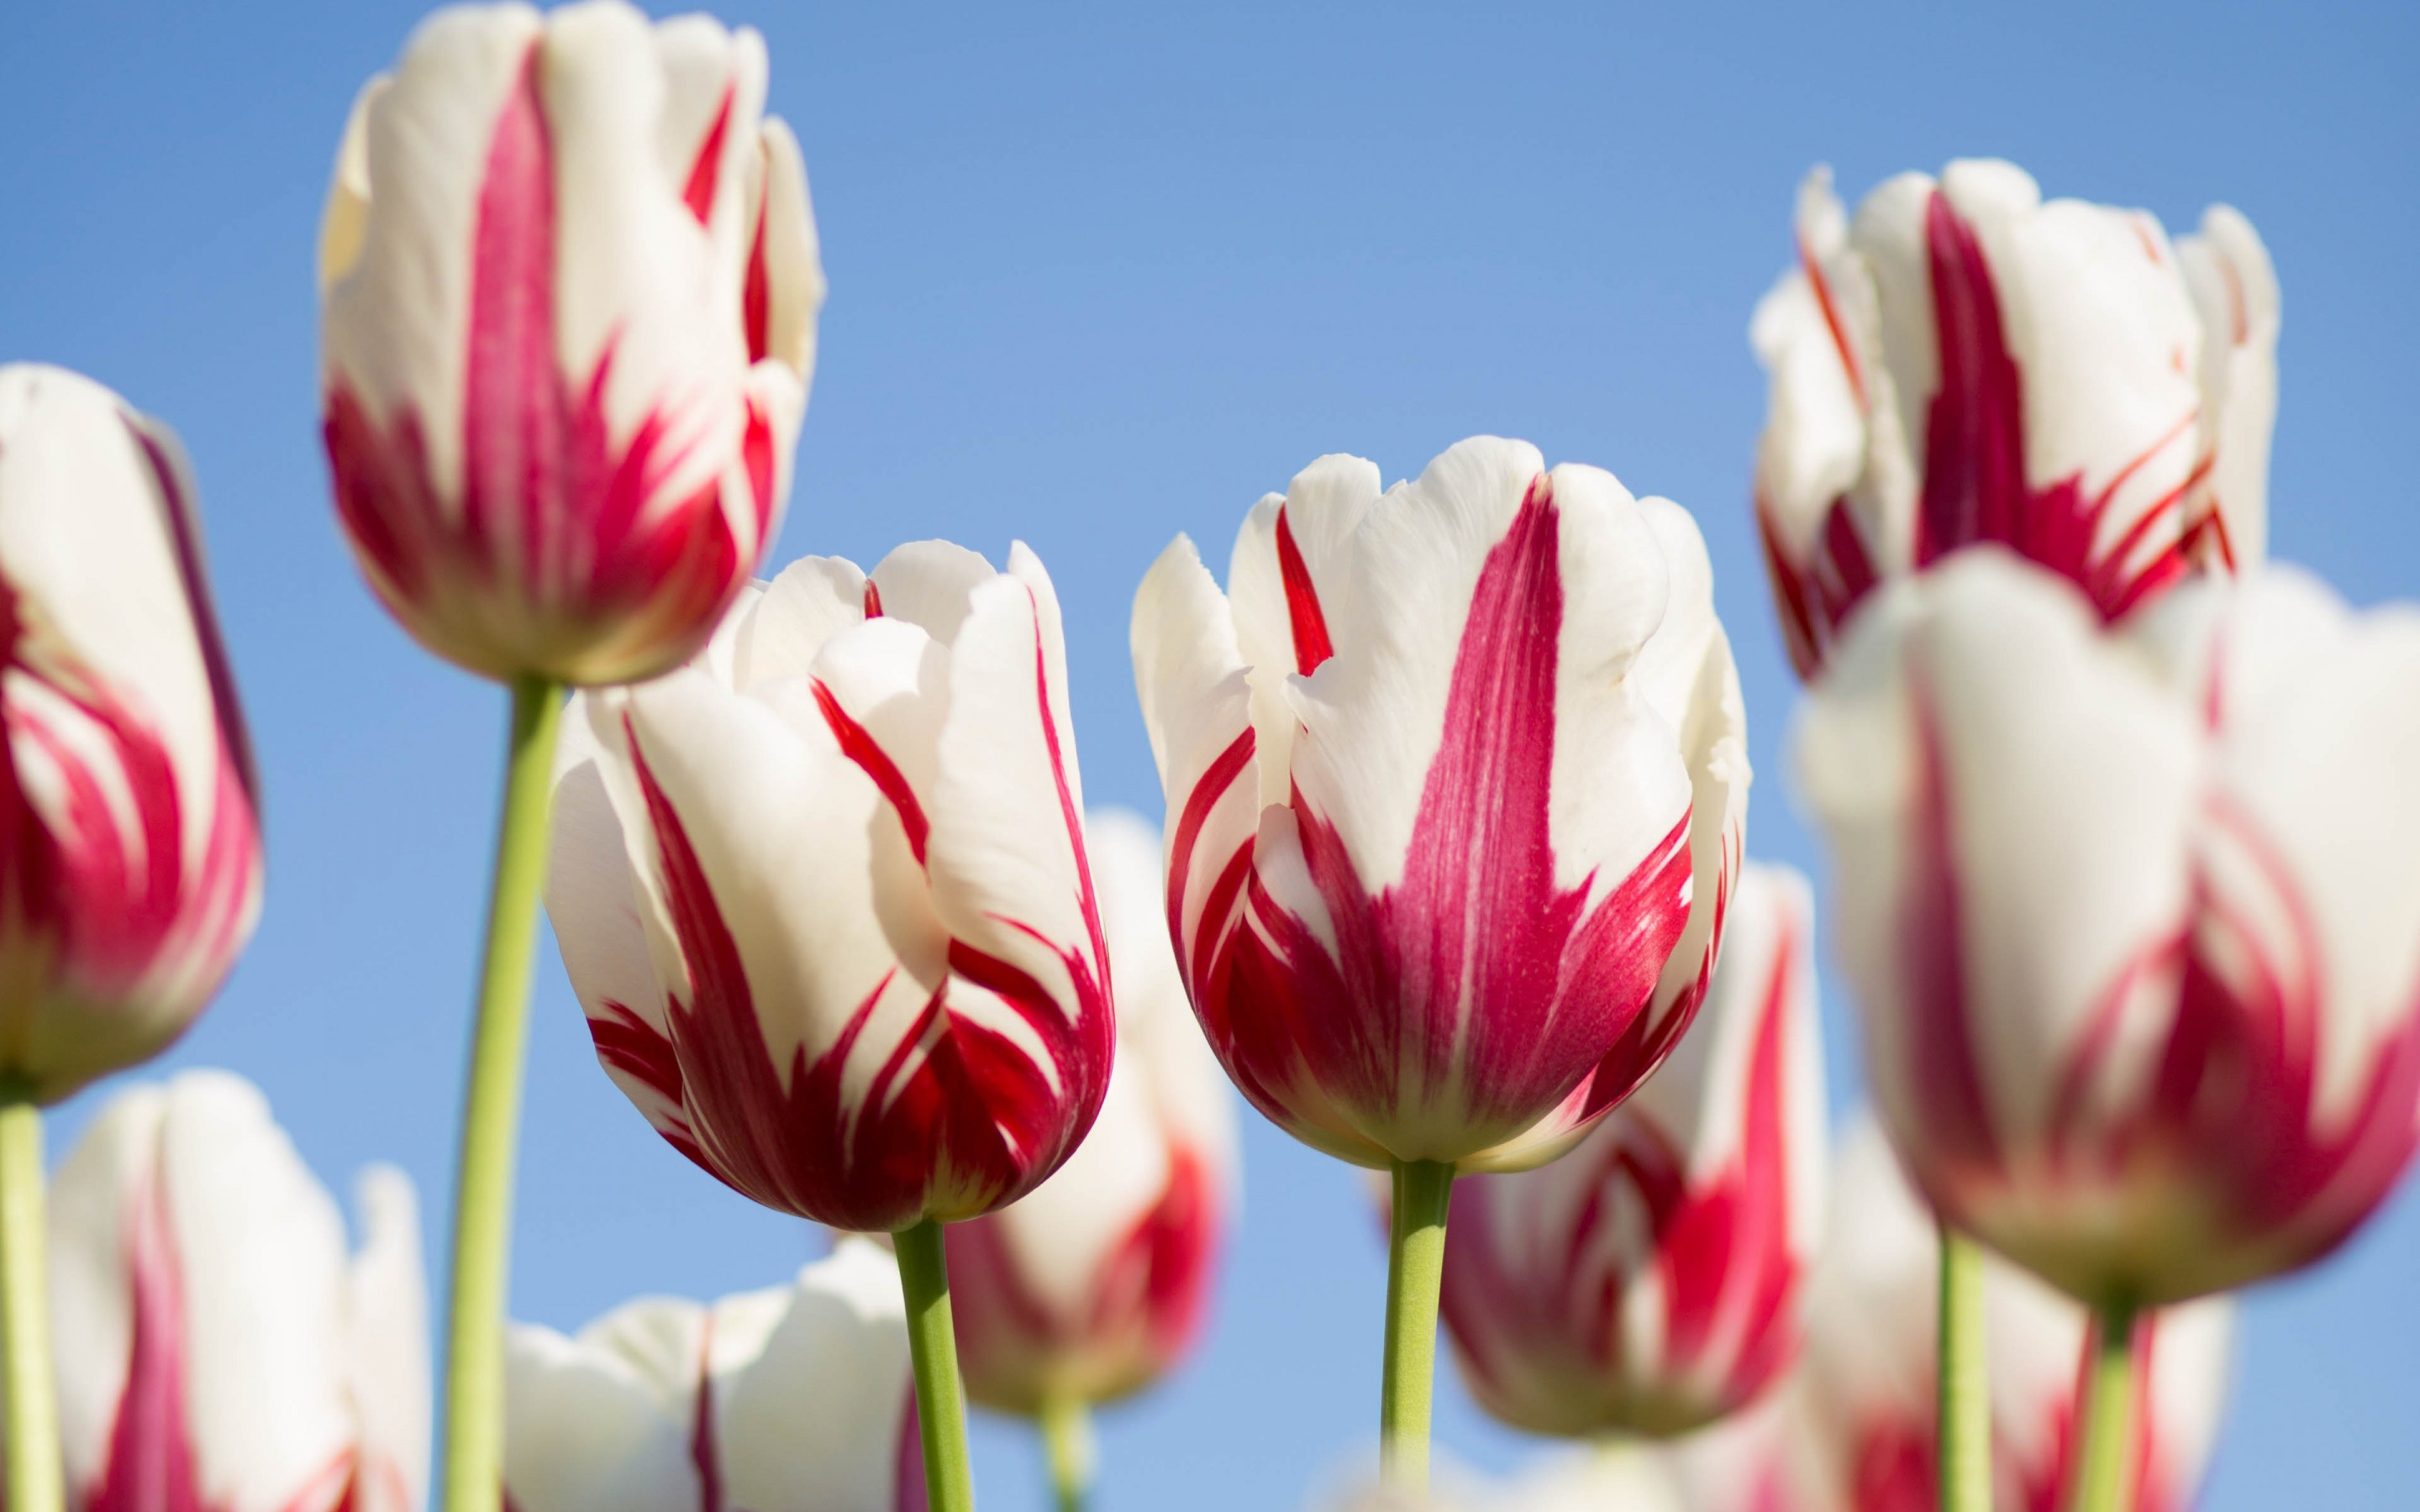 Red white tulips wallpaper 2880x1800